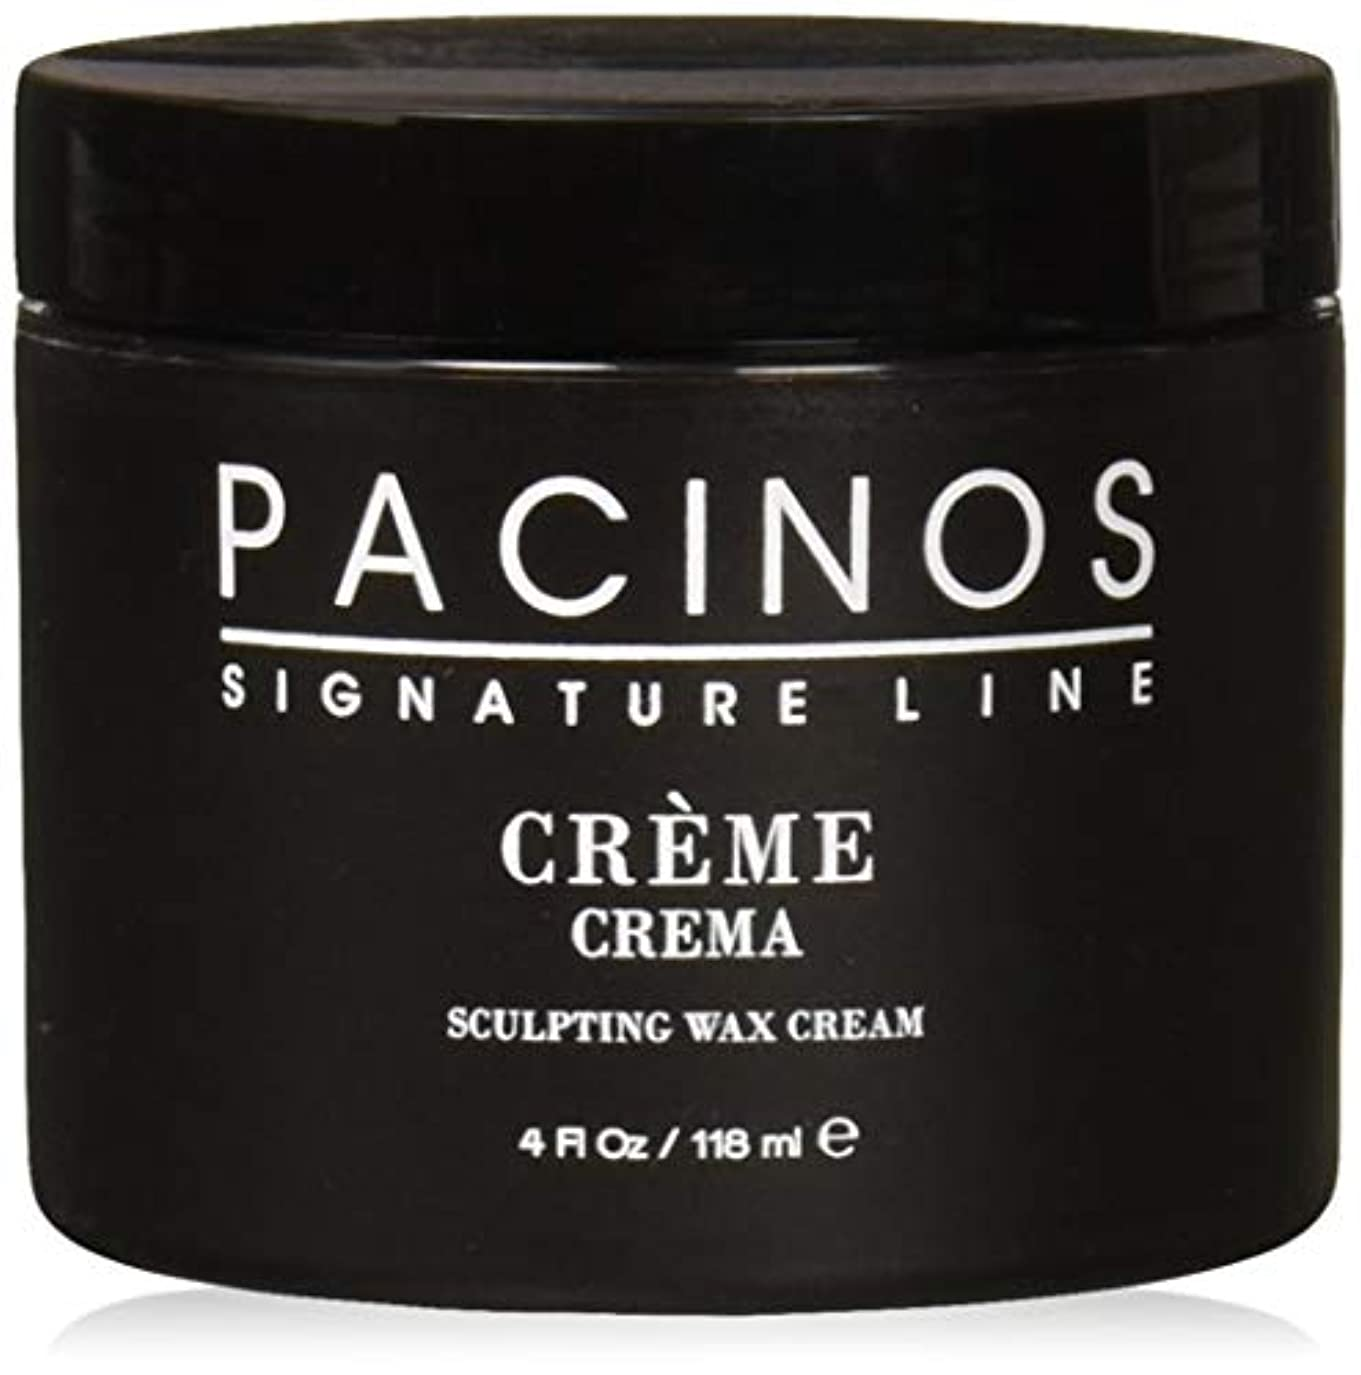 共同選択利益溶岩Pacinos Grooming Elegance Creme, Sculpting Wax Cream 4oz by Pacinos [並行輸入品]